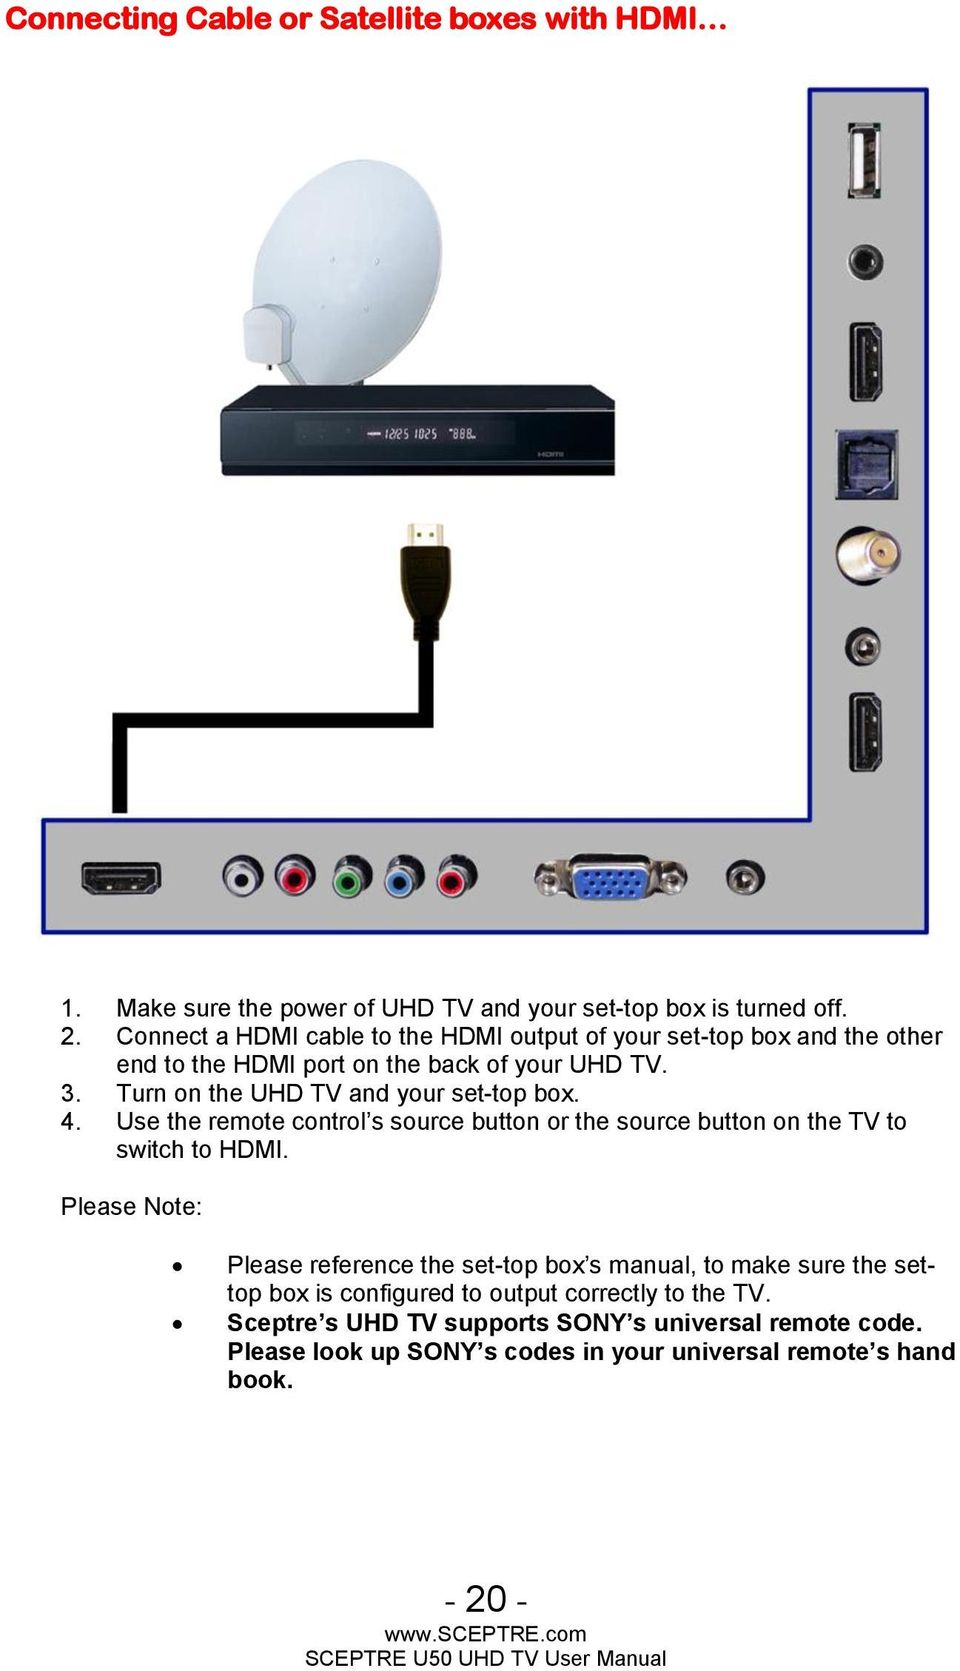 Sceptre U50 Uhd Tv User Manual Pdf General Plasma Service Turn On The And Your Set Top Box 4 Use